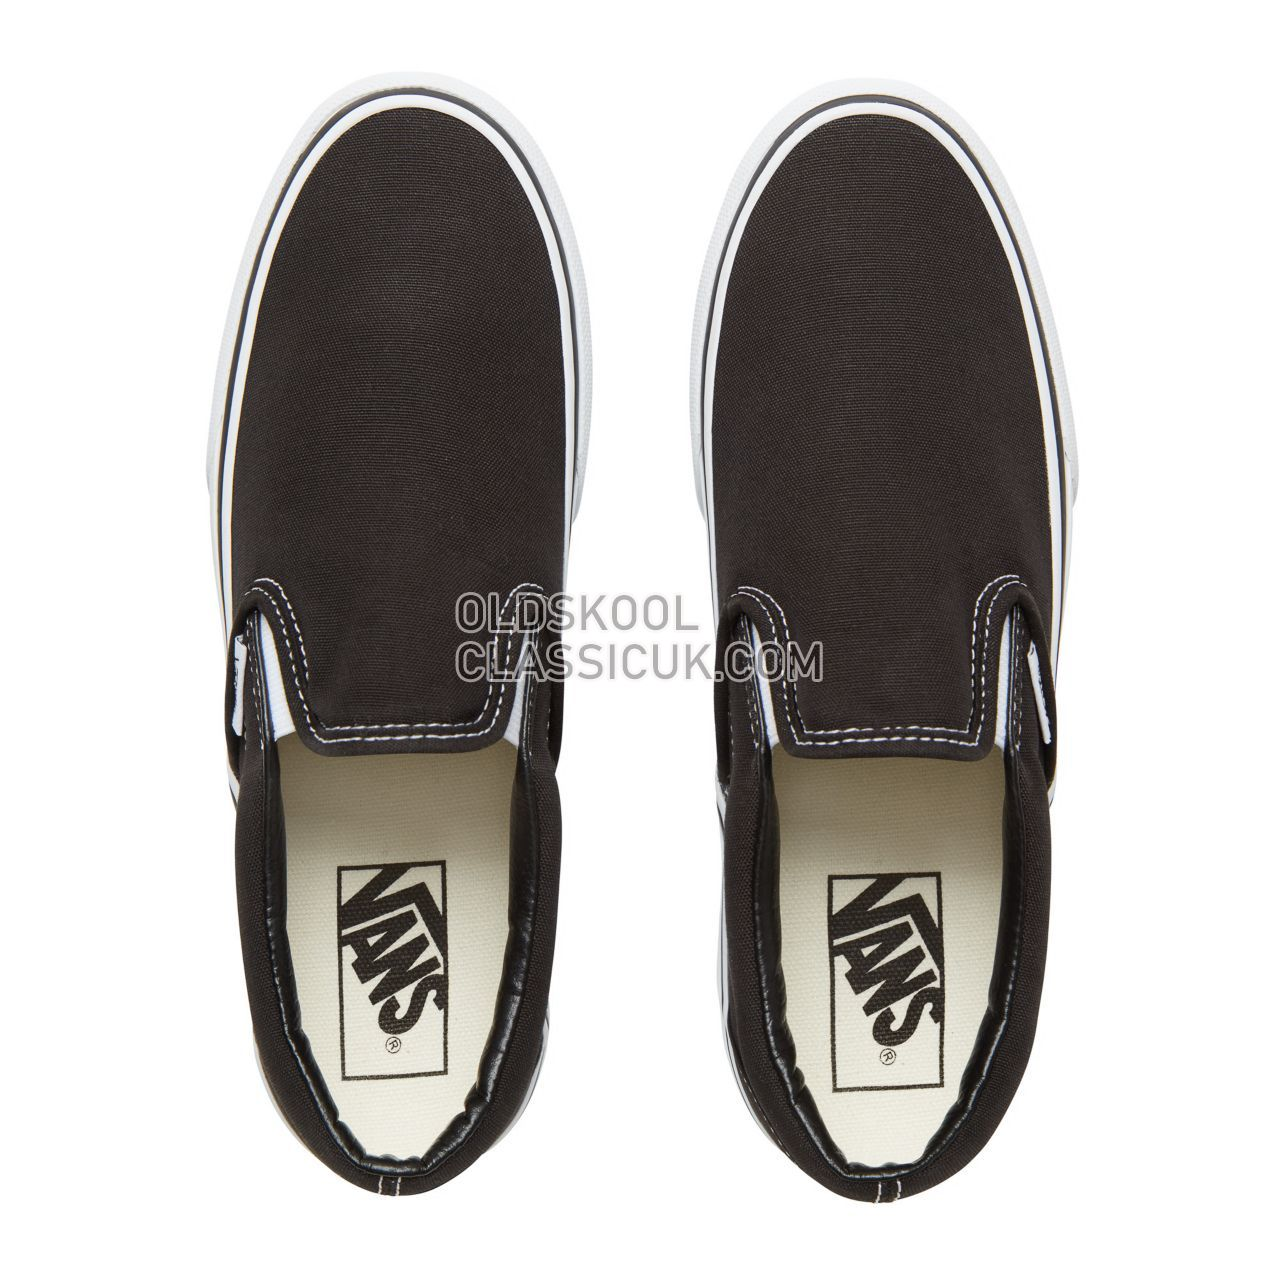 Vans Classic Slip-On Platform Womens Black VN00018EBLK Shoes